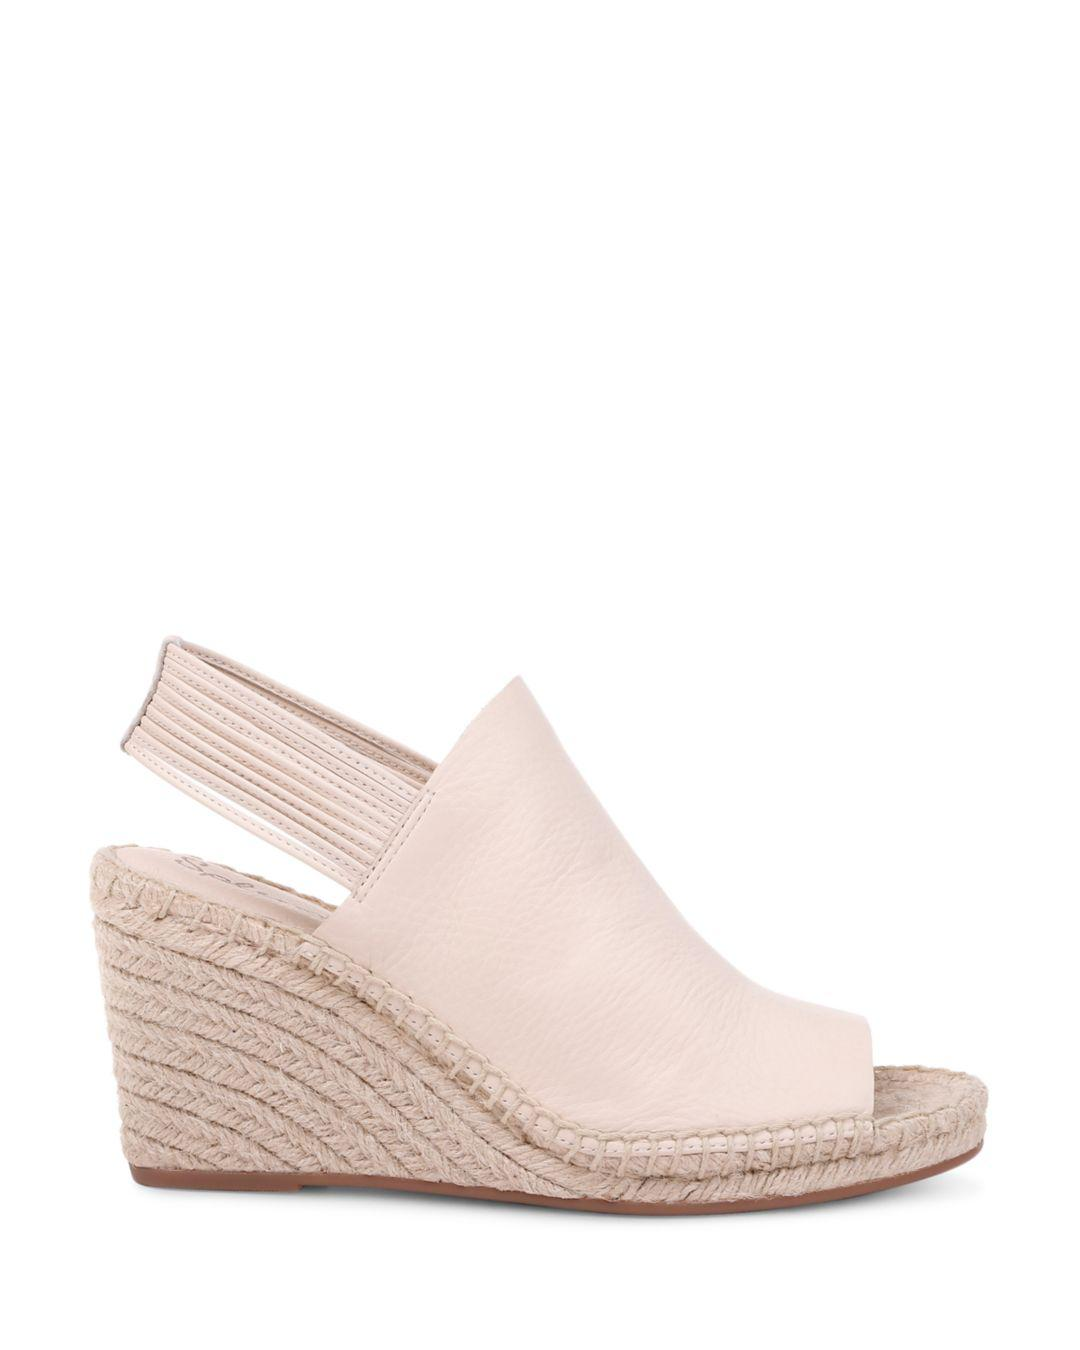 a207516026f Women's Simon Leather Espadrille Wedge Sandals